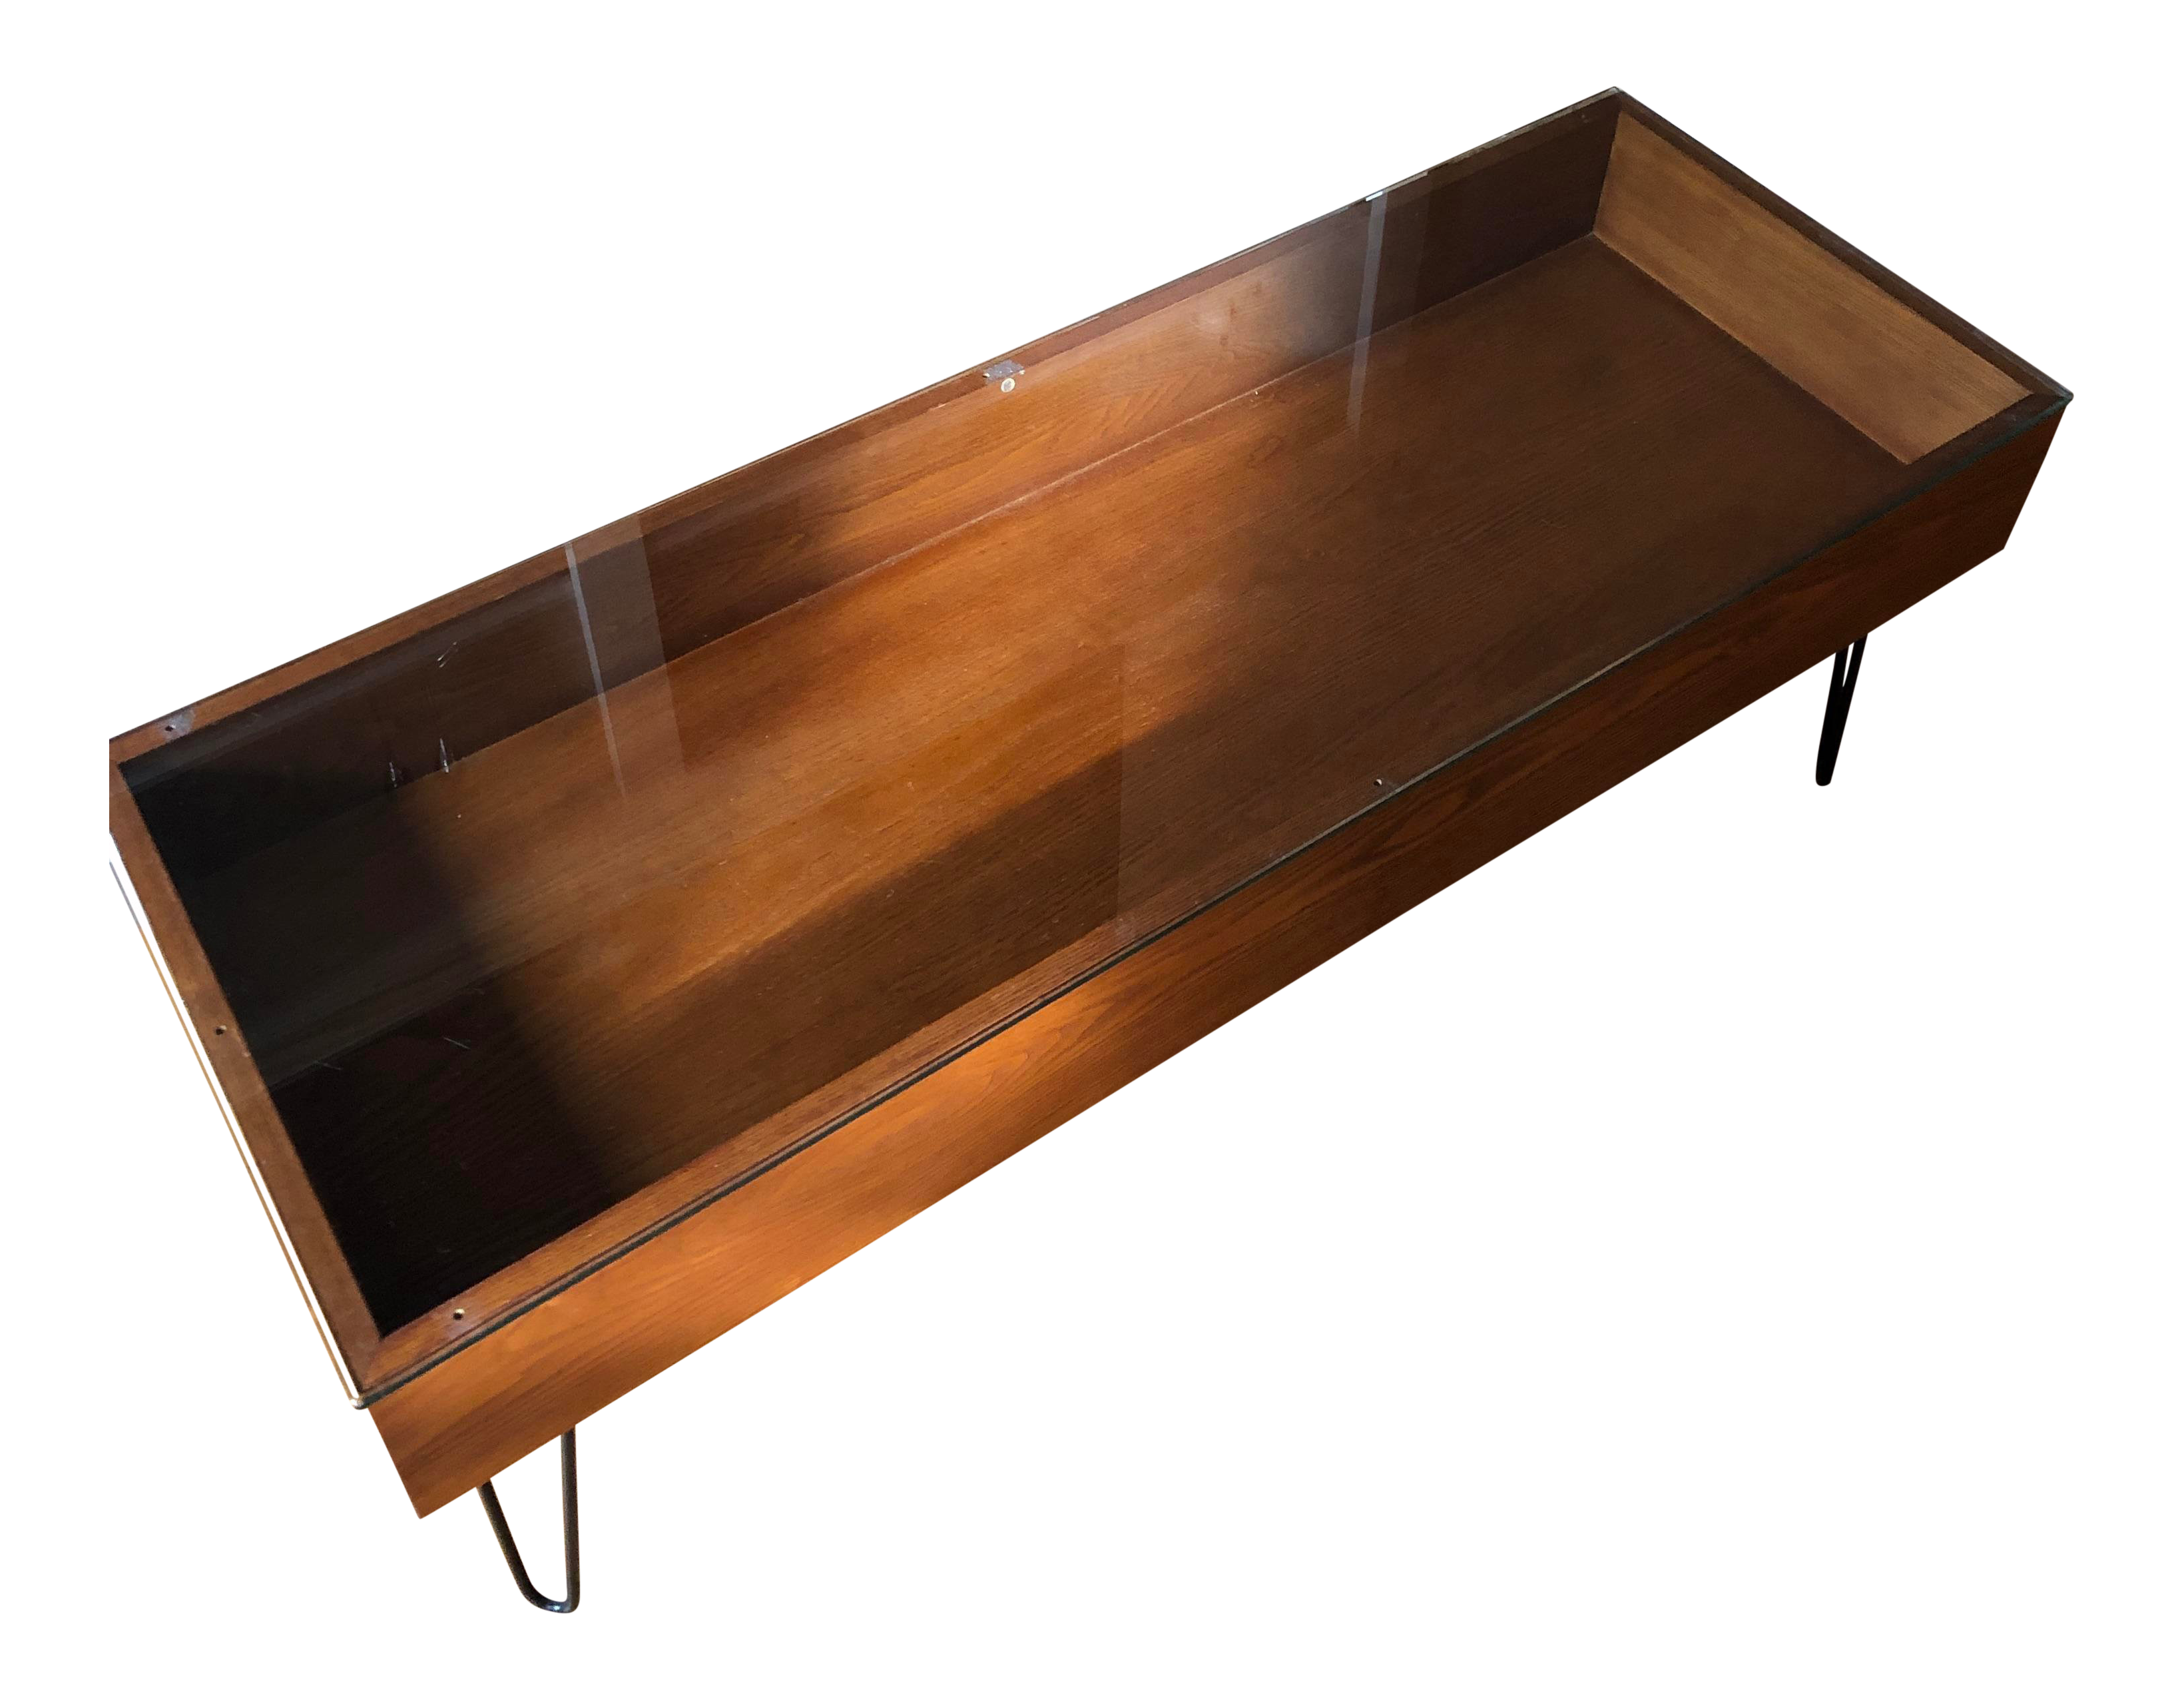 gently used west elm furniture off chairish mid century modern glass top display coffee table pottery barn frog drum accent brass finish large lucite small industrial kitchen